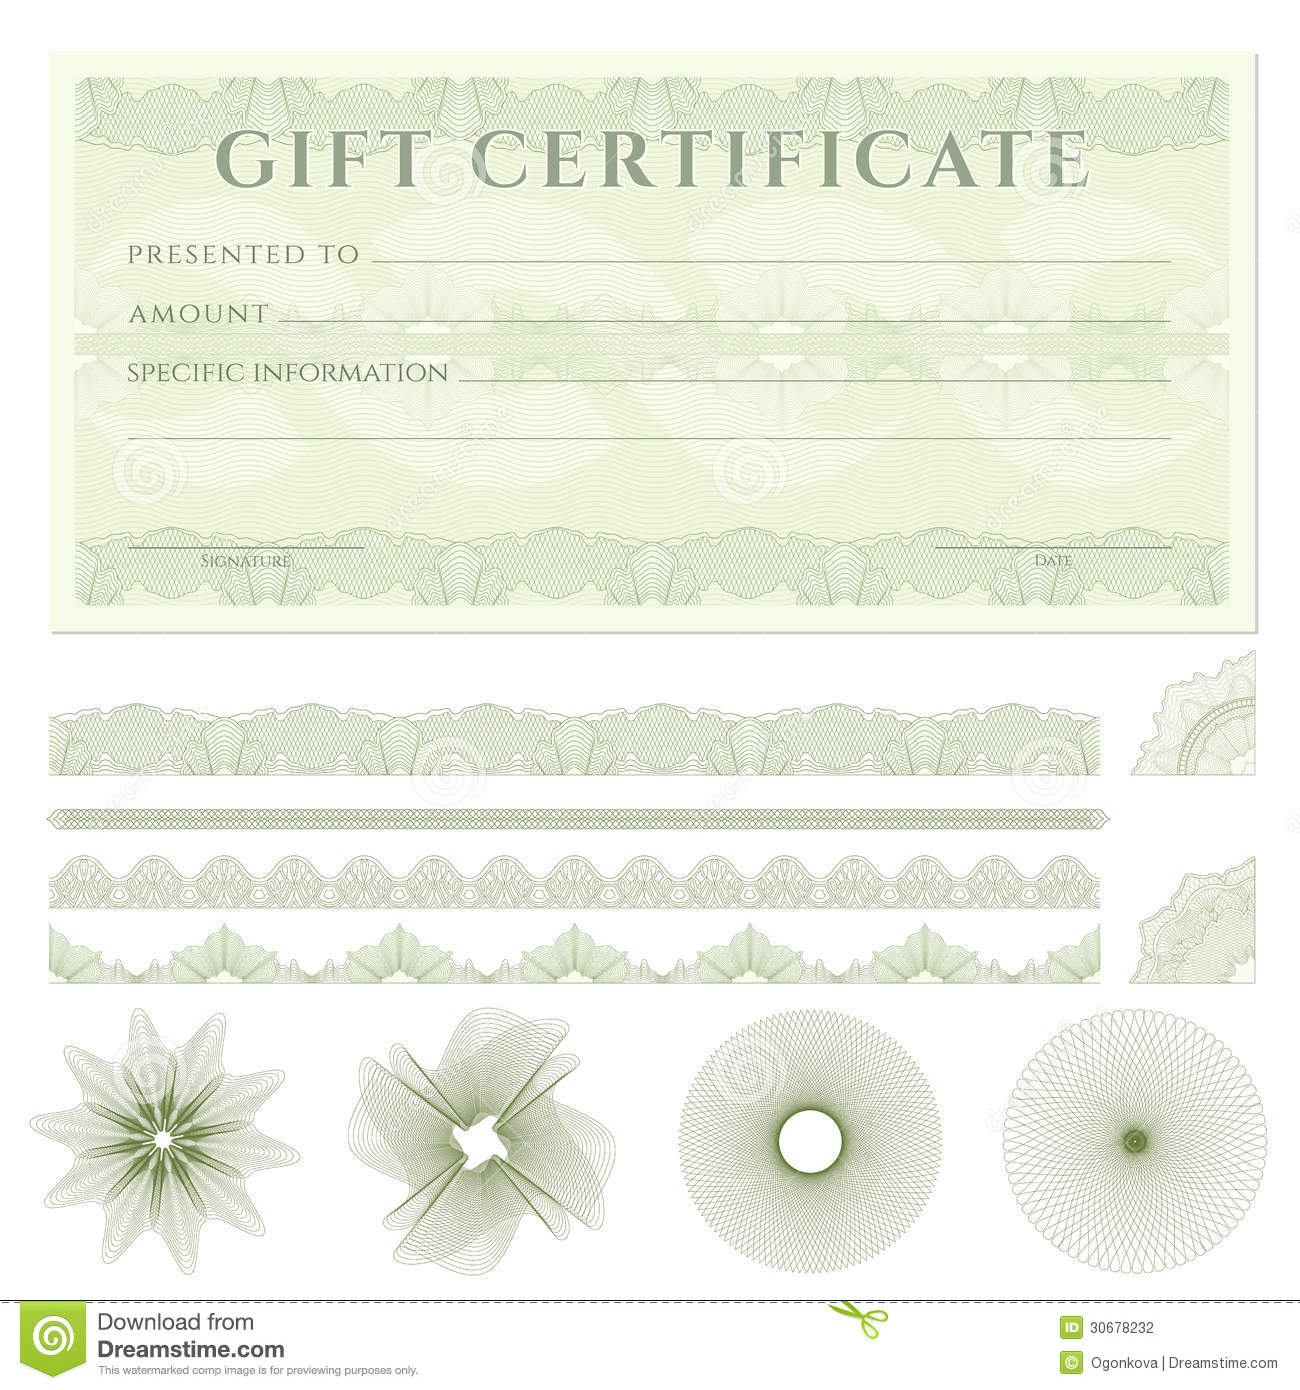 Gift certificate voucher template with borders stock vector gift certificate voucher template with borders royalty free stock photo 1betcityfo Images